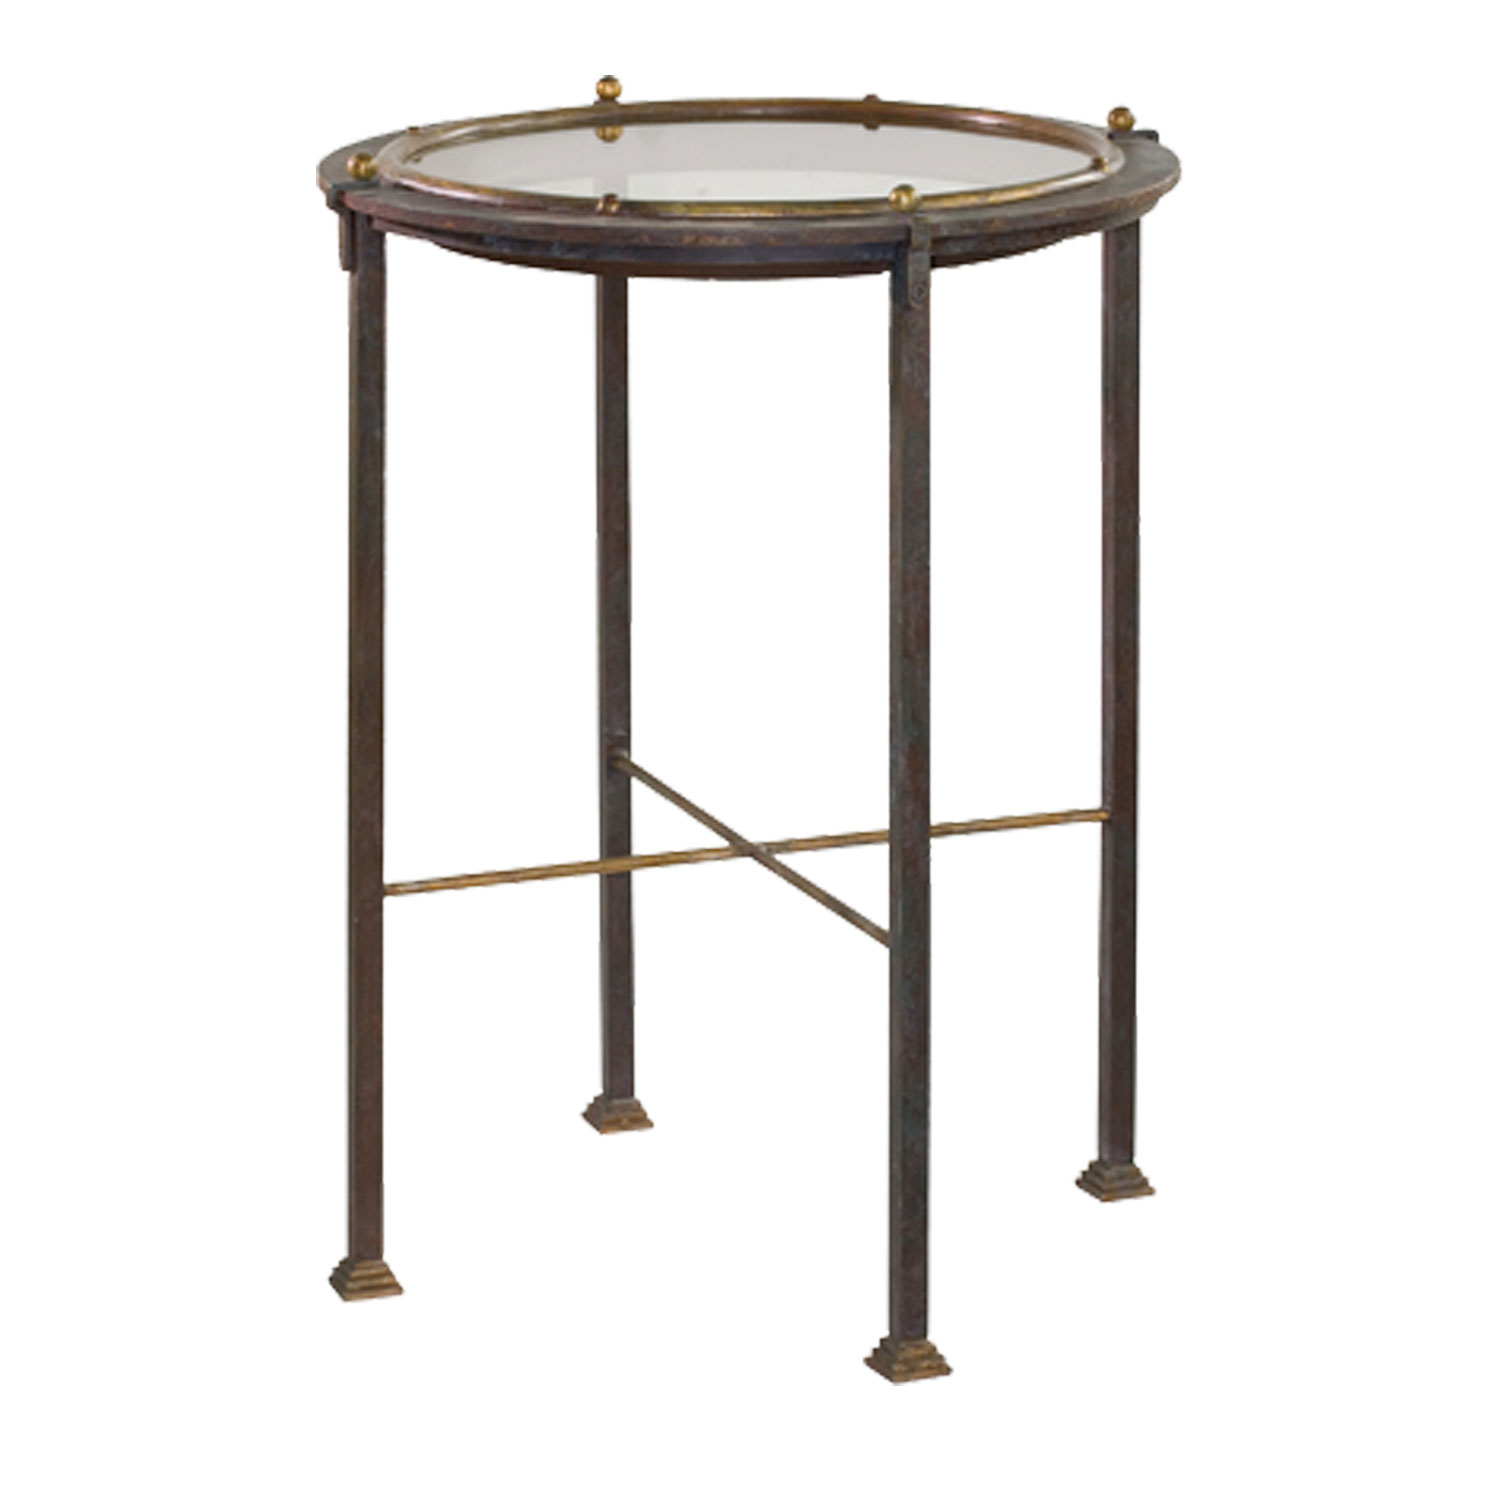 snap metal virgil accent table fireplaces club chairs and love this david iatesta studio porthole furniture side tables industrial traditional house interior ideas counter height